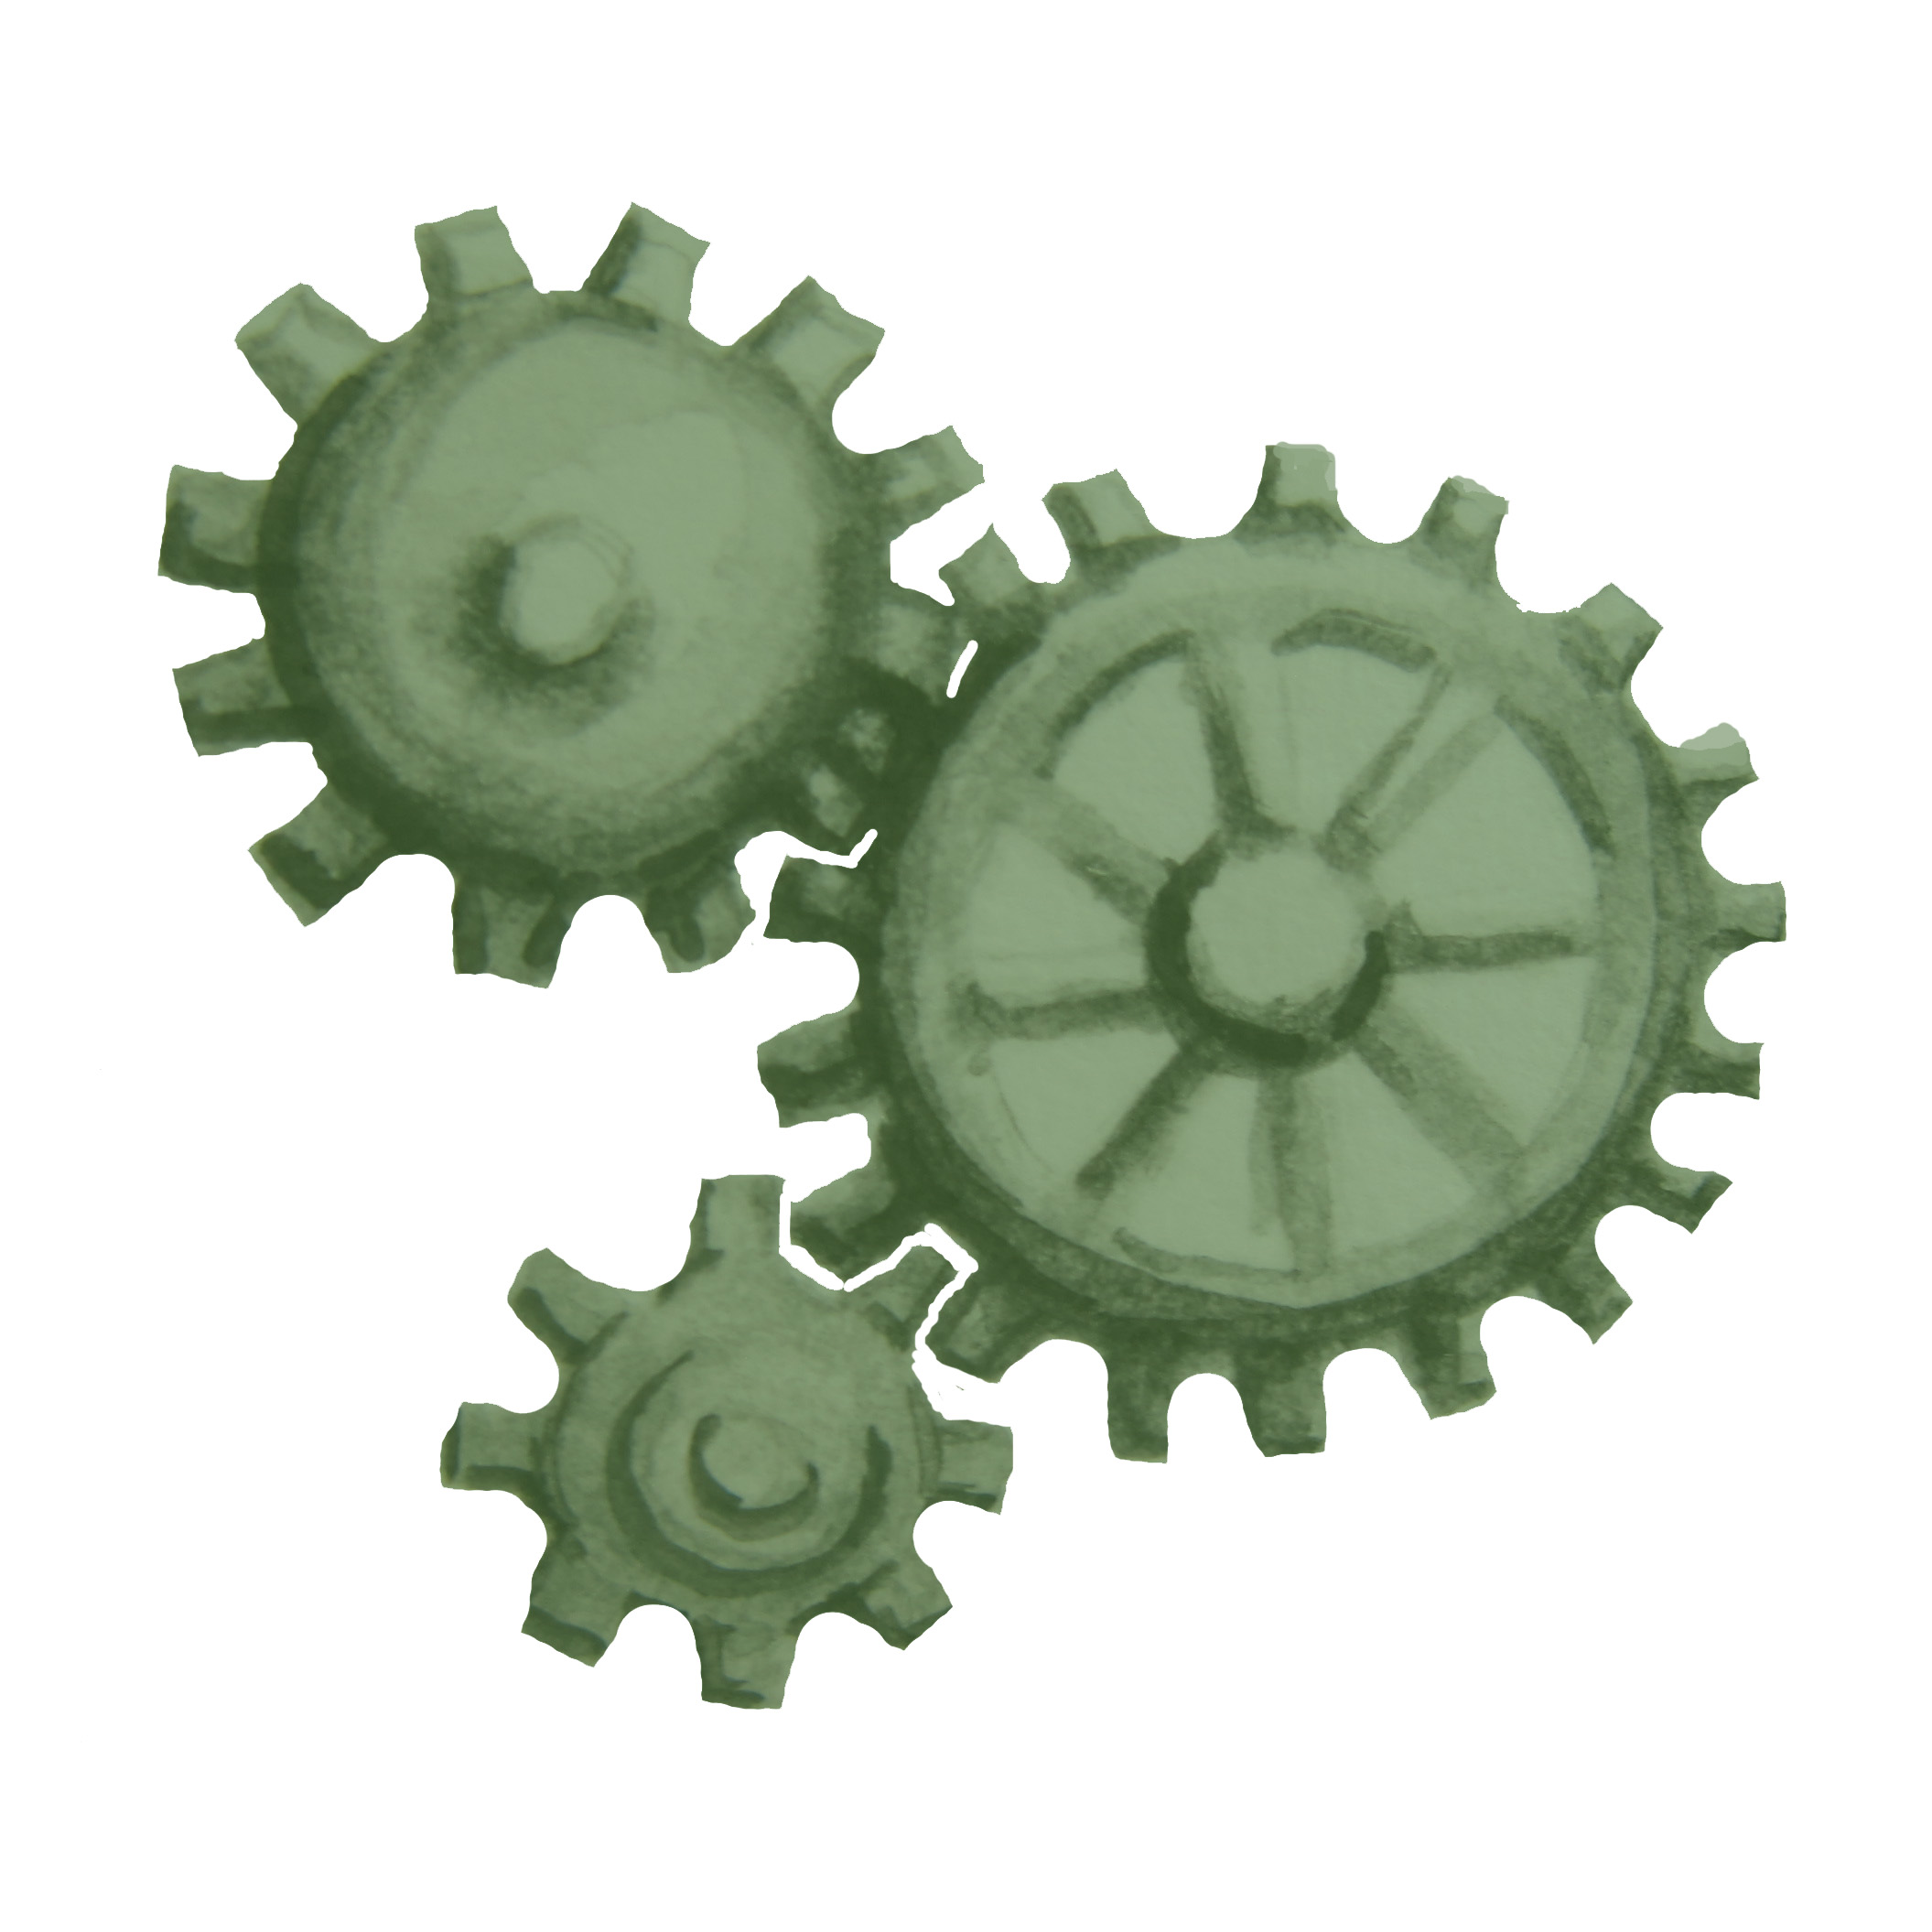 Three green gears working together